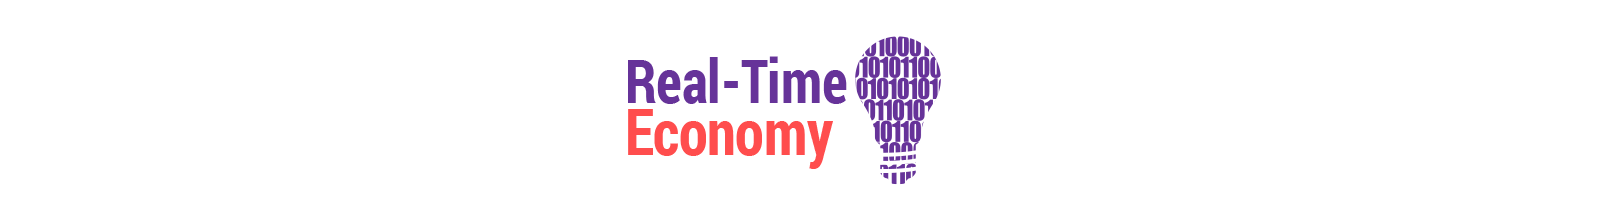 Real-Time Economy Competence Center